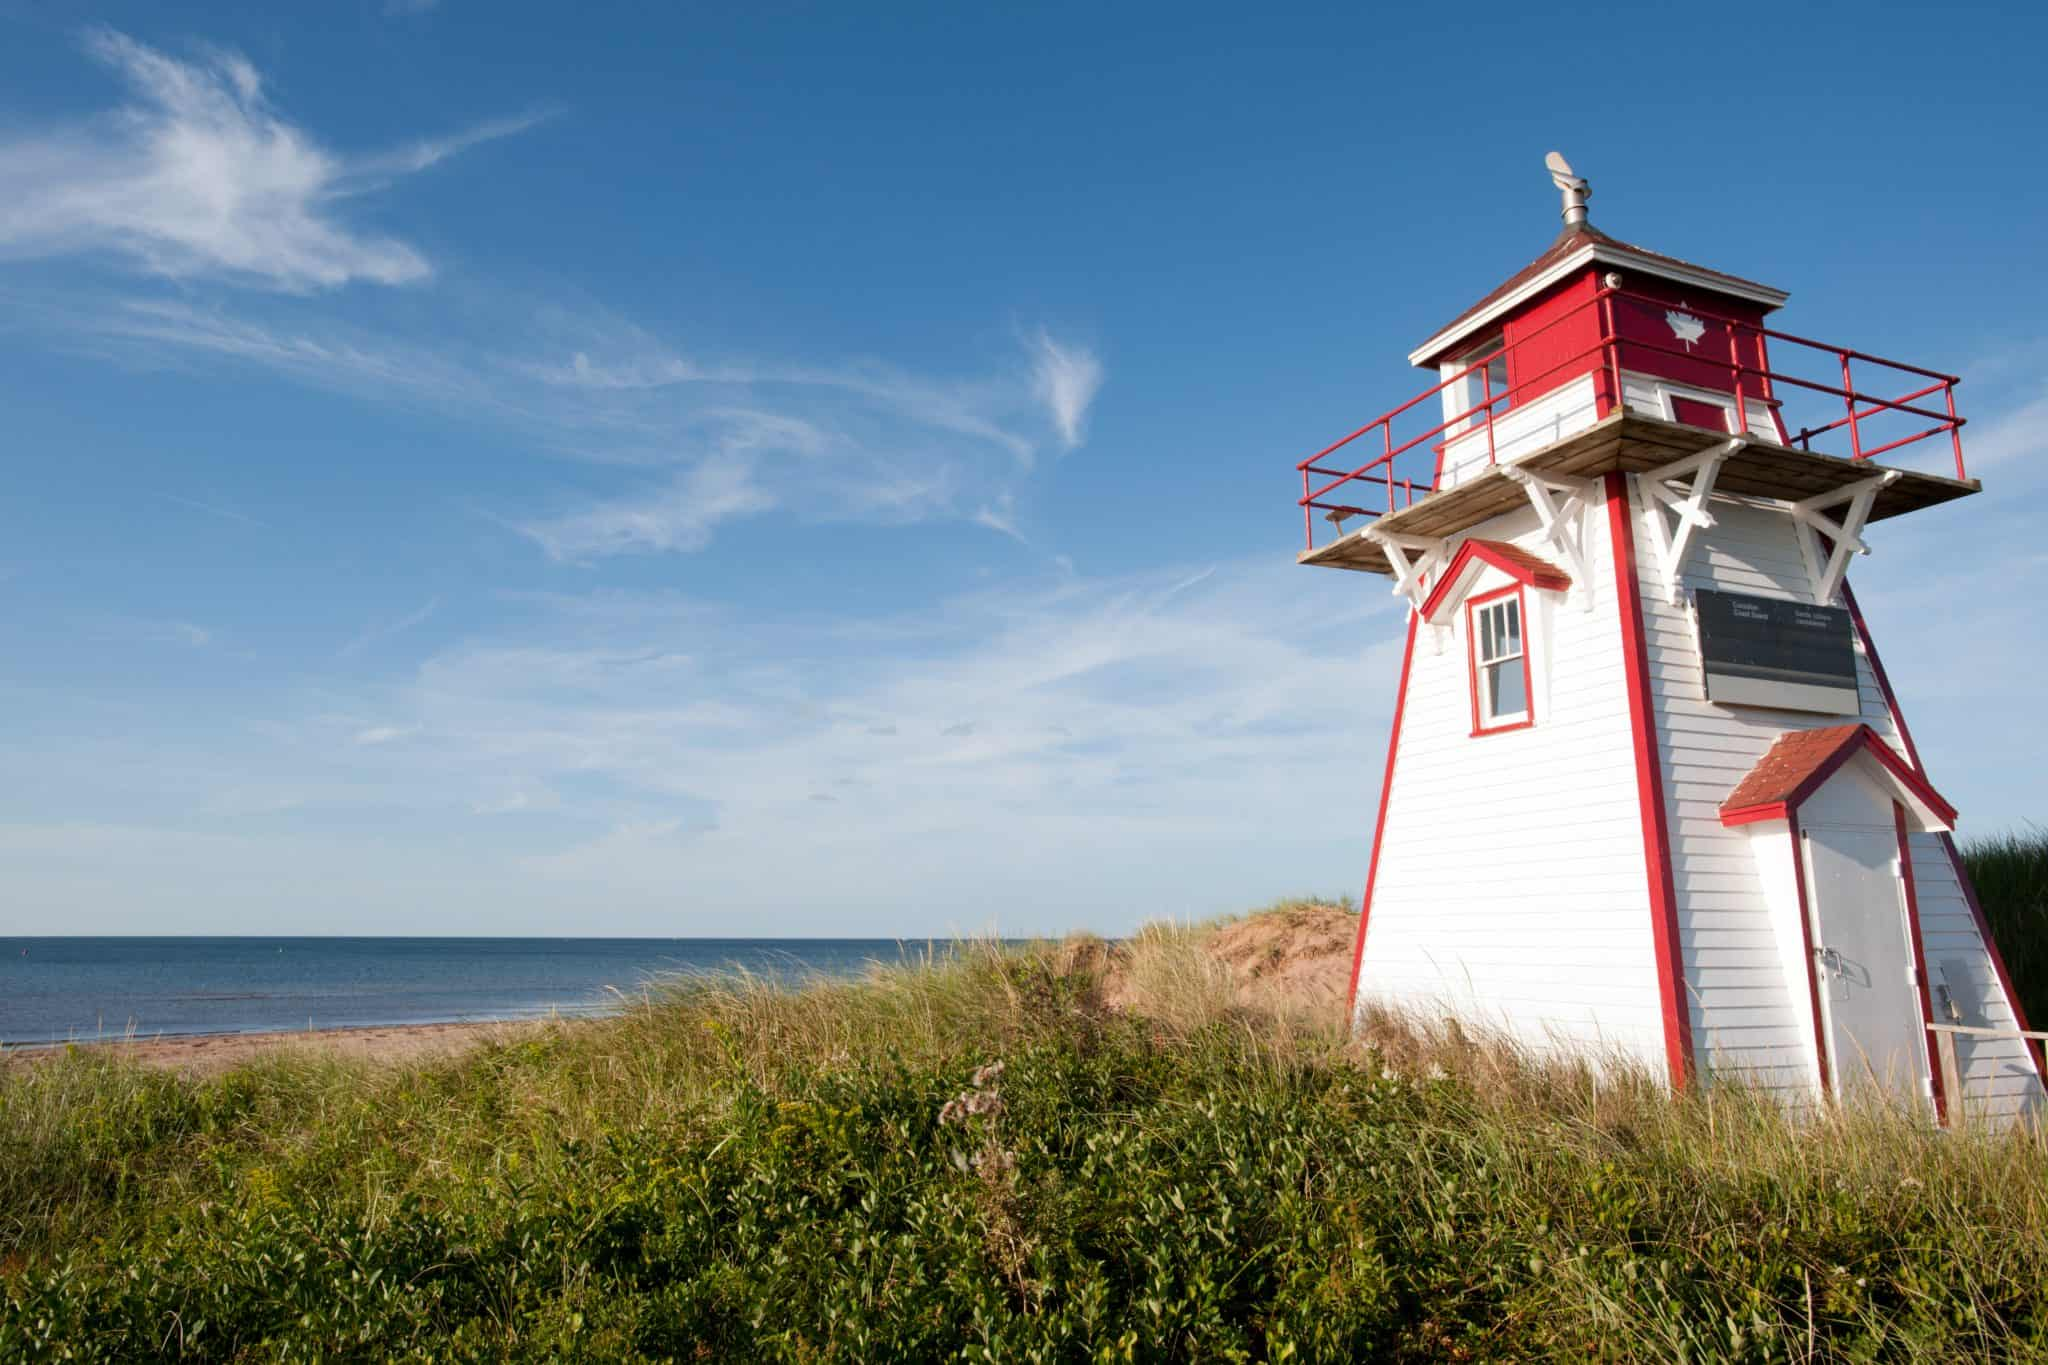 I'm so excited (and a little jealous) you are getting the chance to win this trip for 2 to Prince Edward Island! Please make sure you read through the official rules for the contest and good luck!